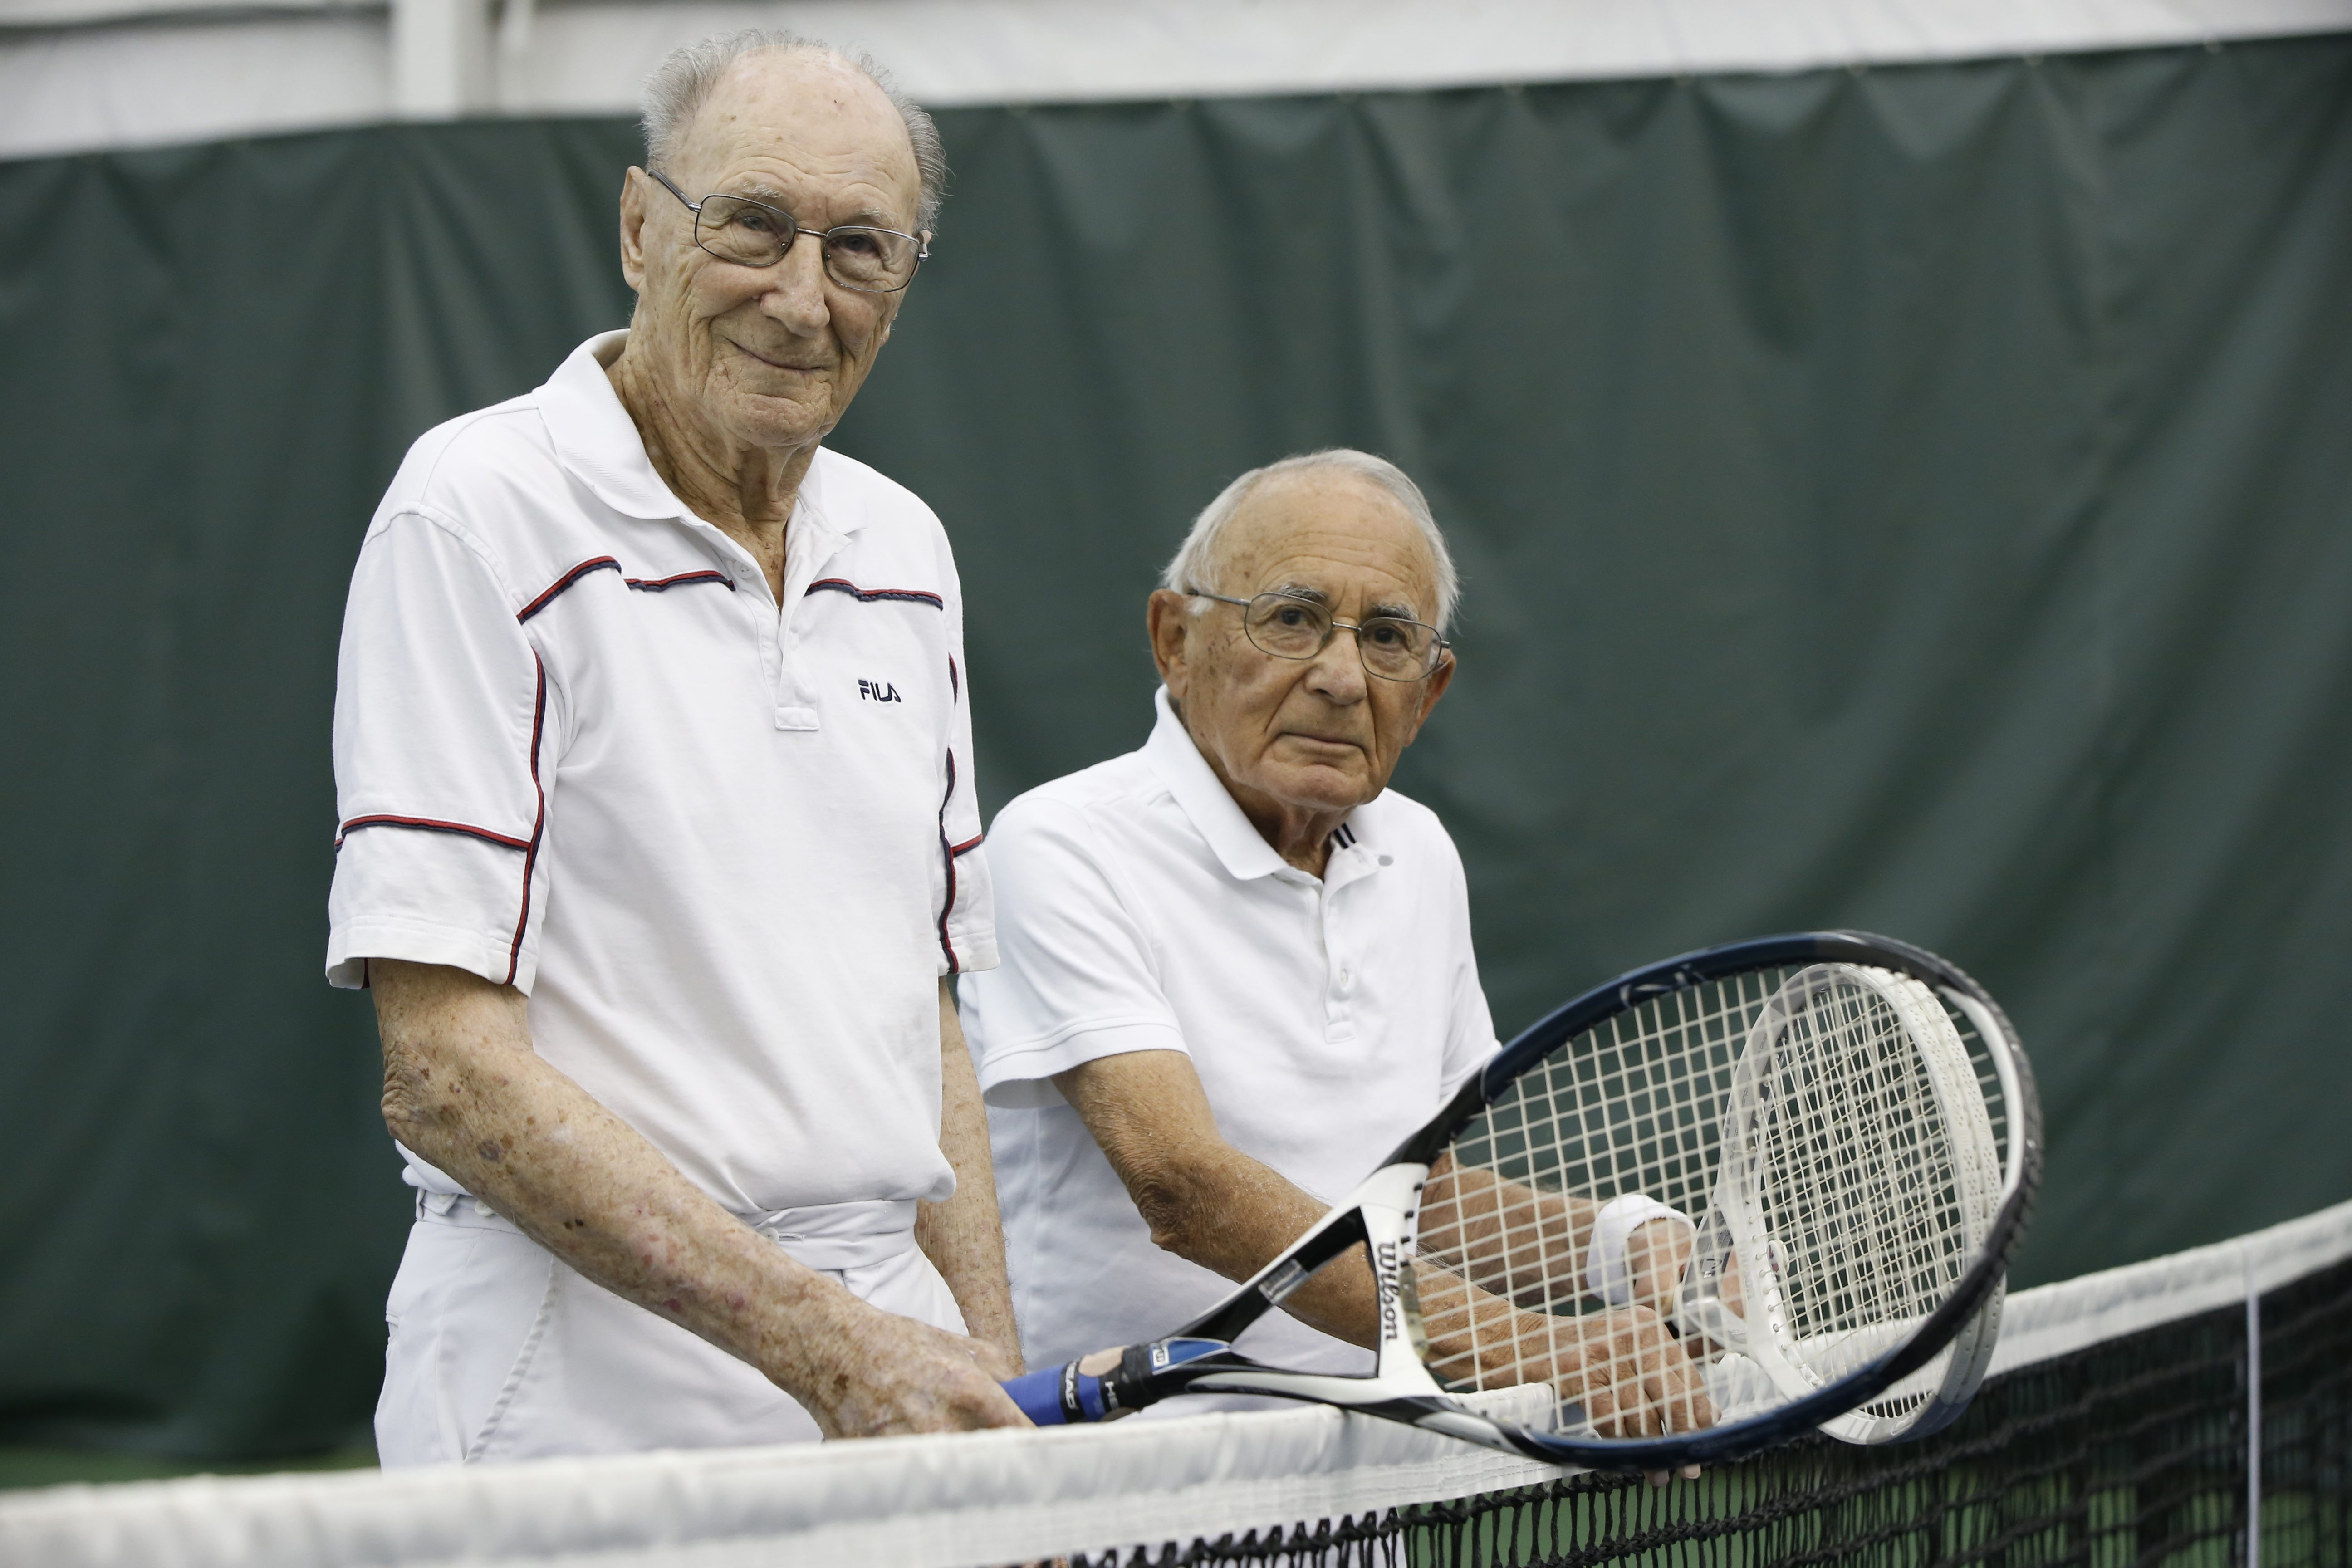 Mort Rothstein, left, 94, and Joe Masling, 92, hit the court together weekly at the Village Glen Tennis Club. Both give a good account for themselves during matches.